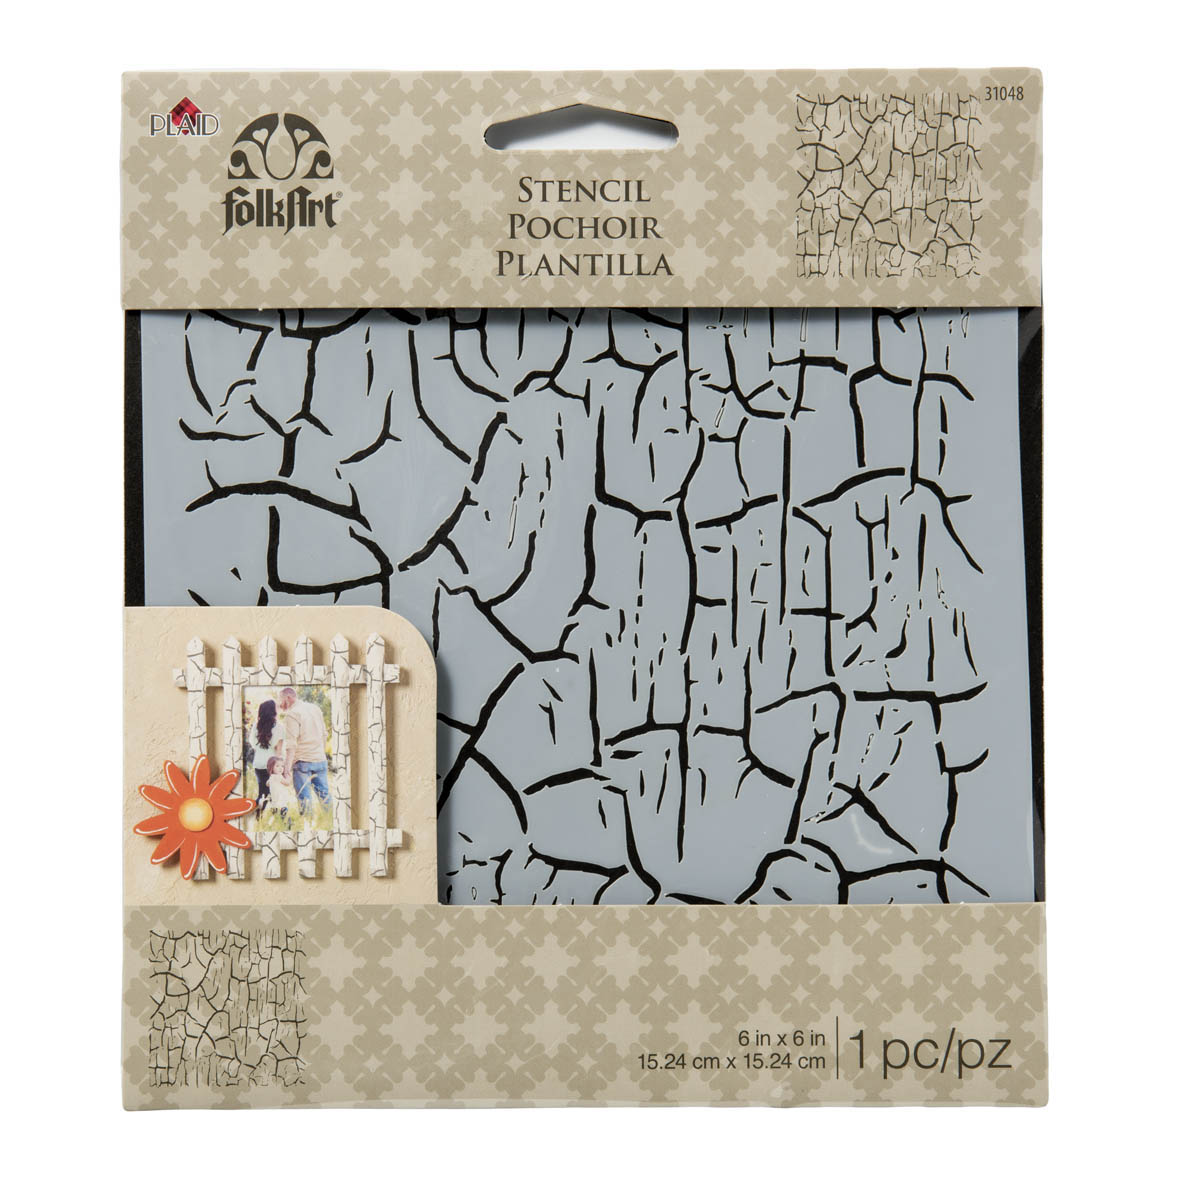 FolkArt ® Painting Stencils - Small - Crackle - MS31048